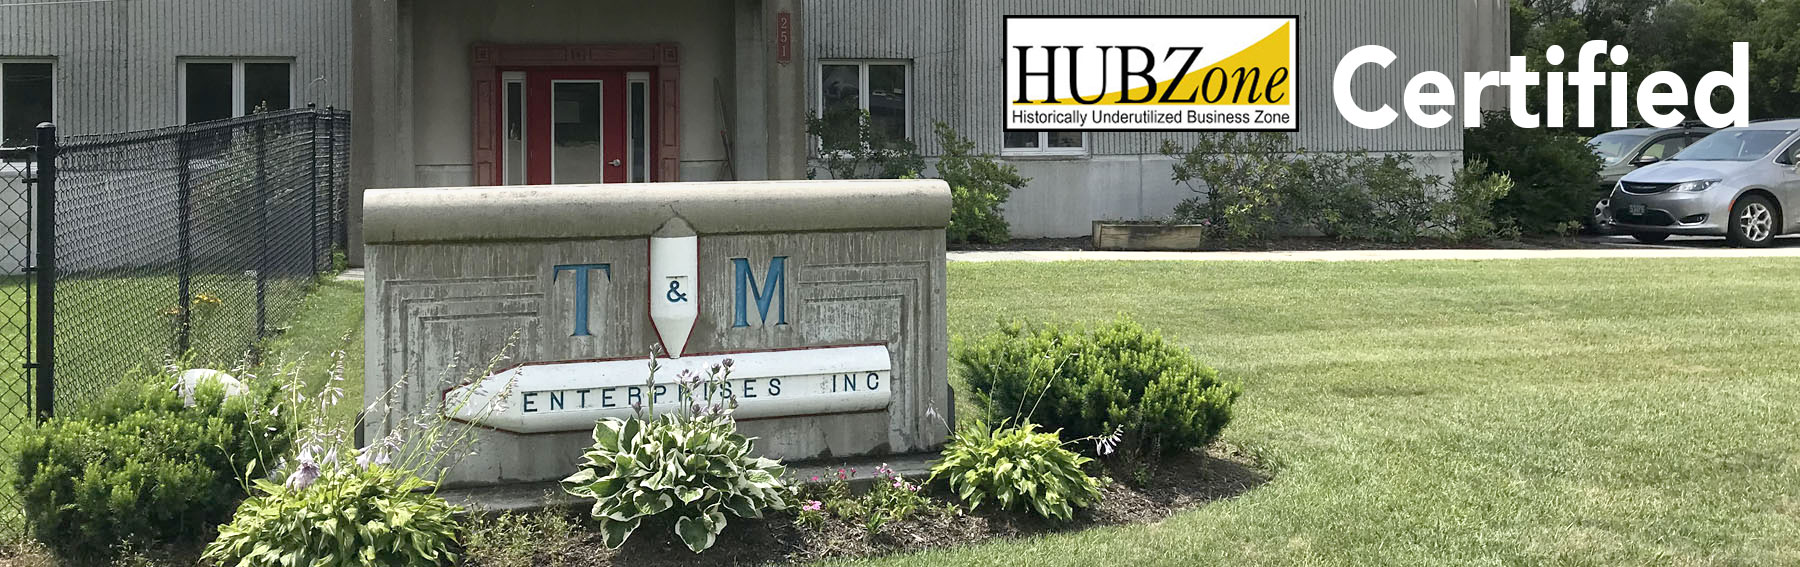 Hub Zone certified small business